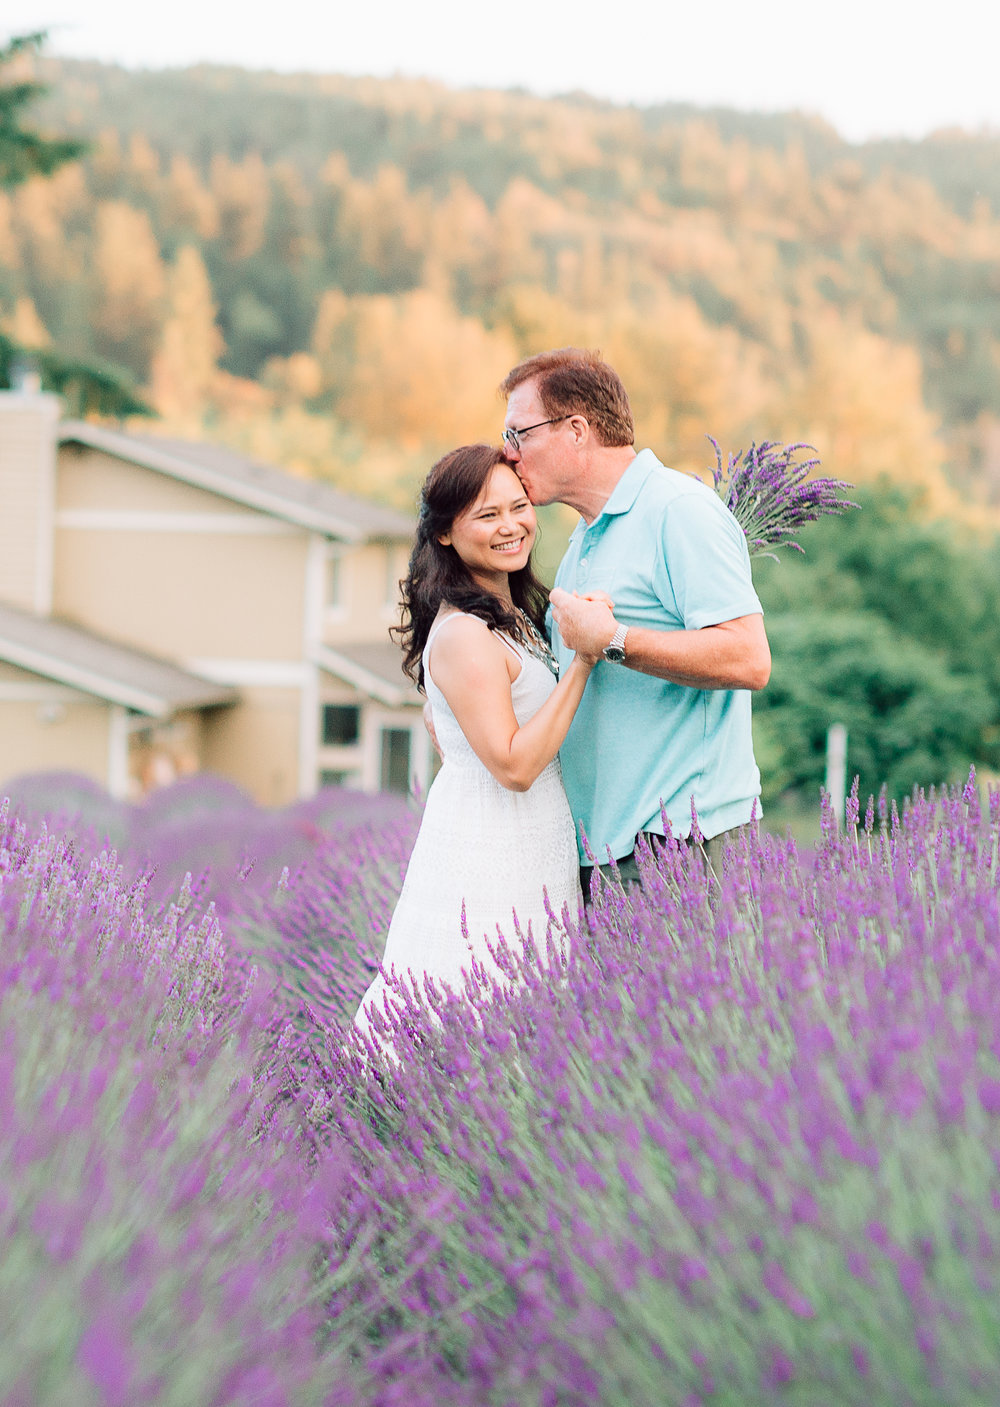 engagement_lavenderfield_youseephotography_LidiaOtto (63).jpg